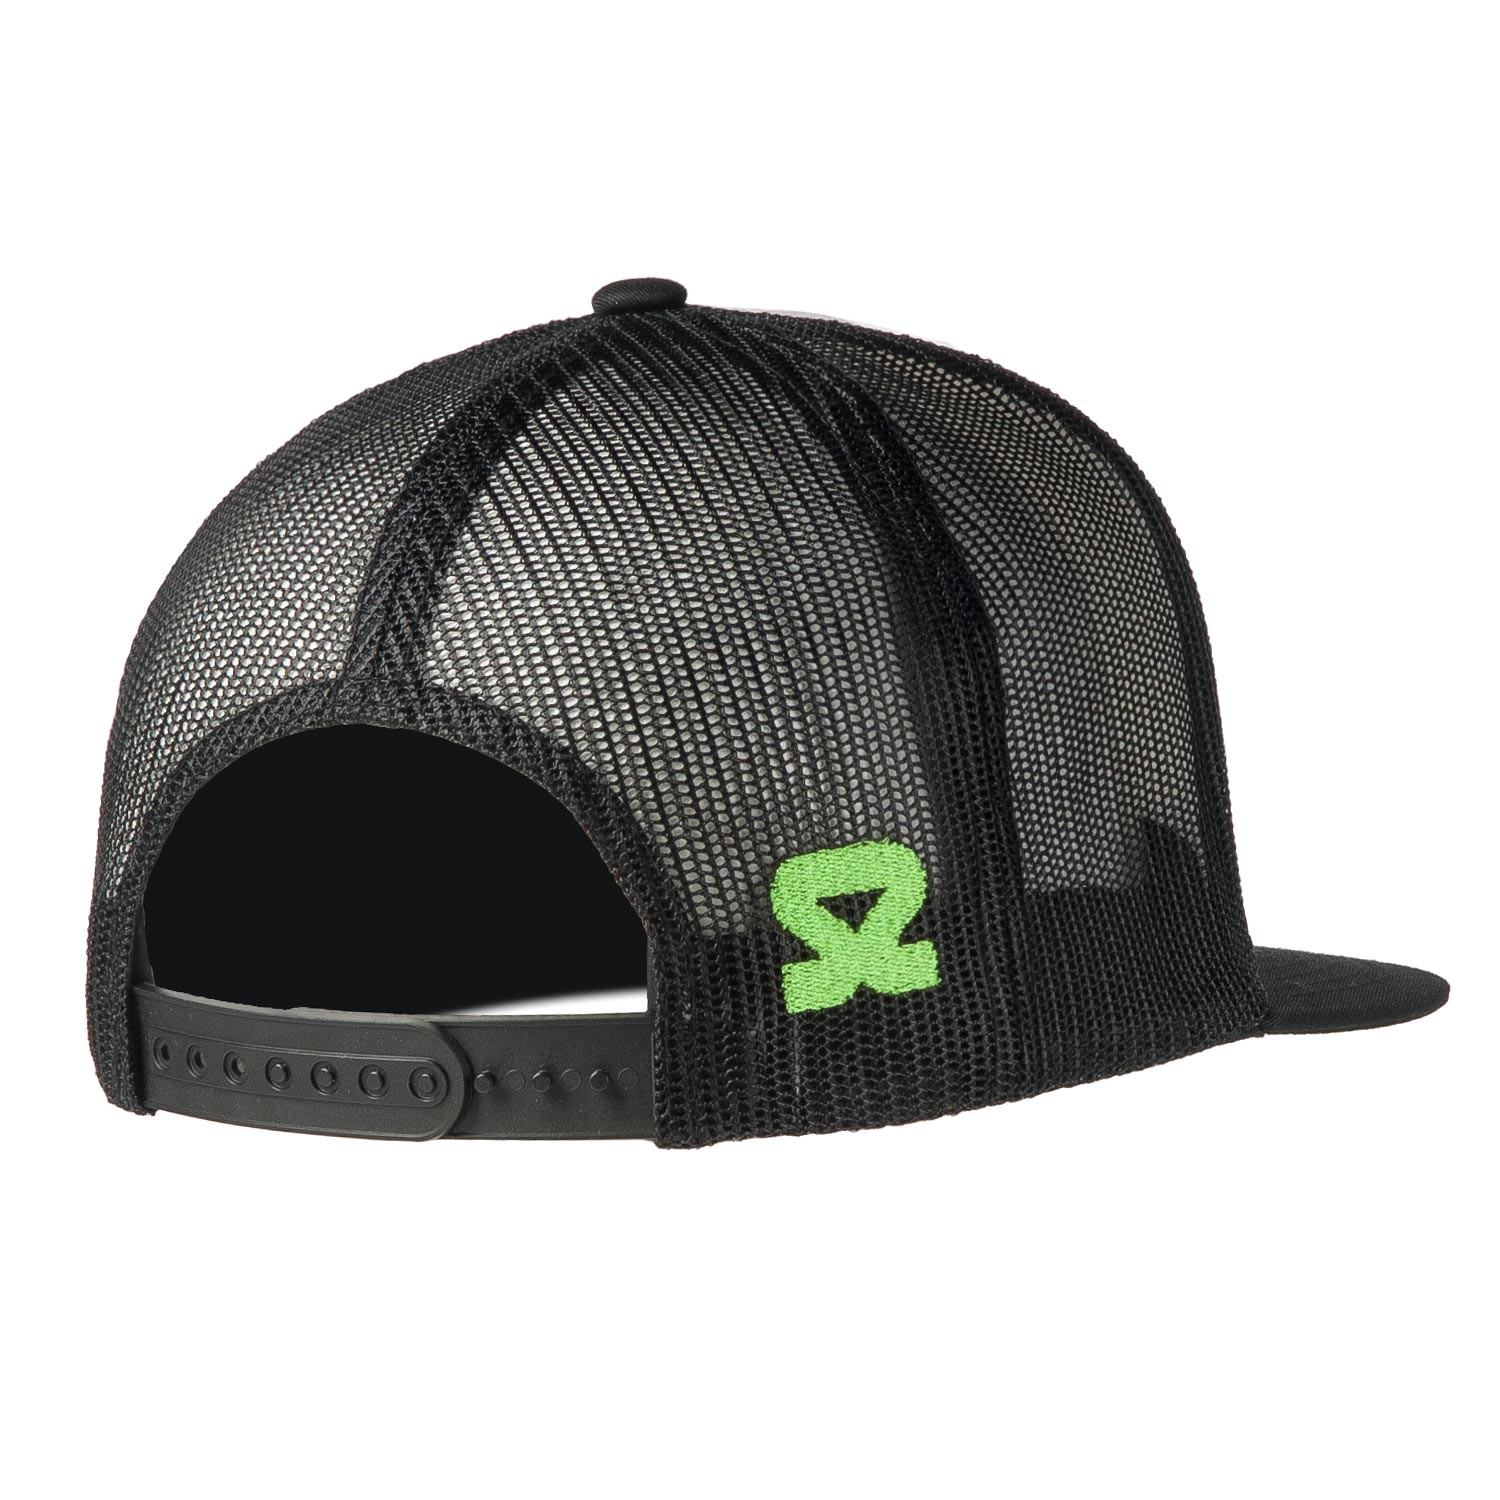 Kšiltovka Wakecation Trucker black white  d0b37d40fc